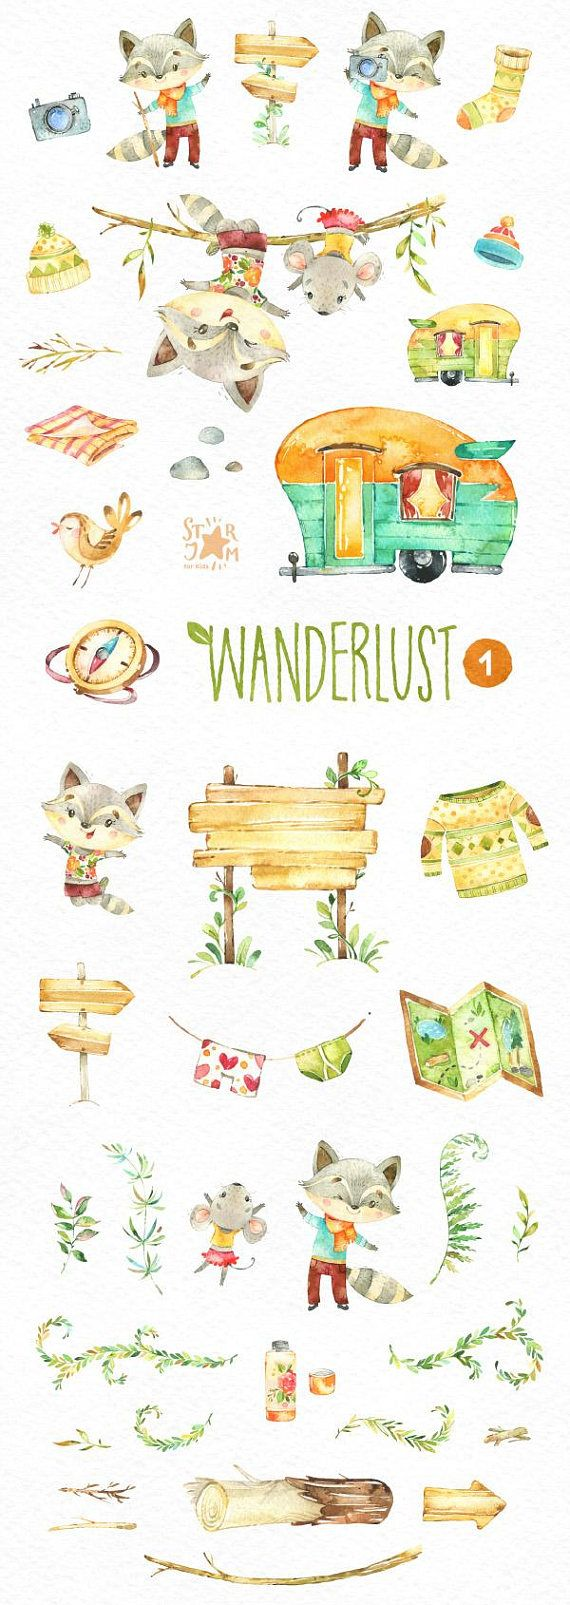 Wanderlust 1. Watercolor animals clipart racoon mouse